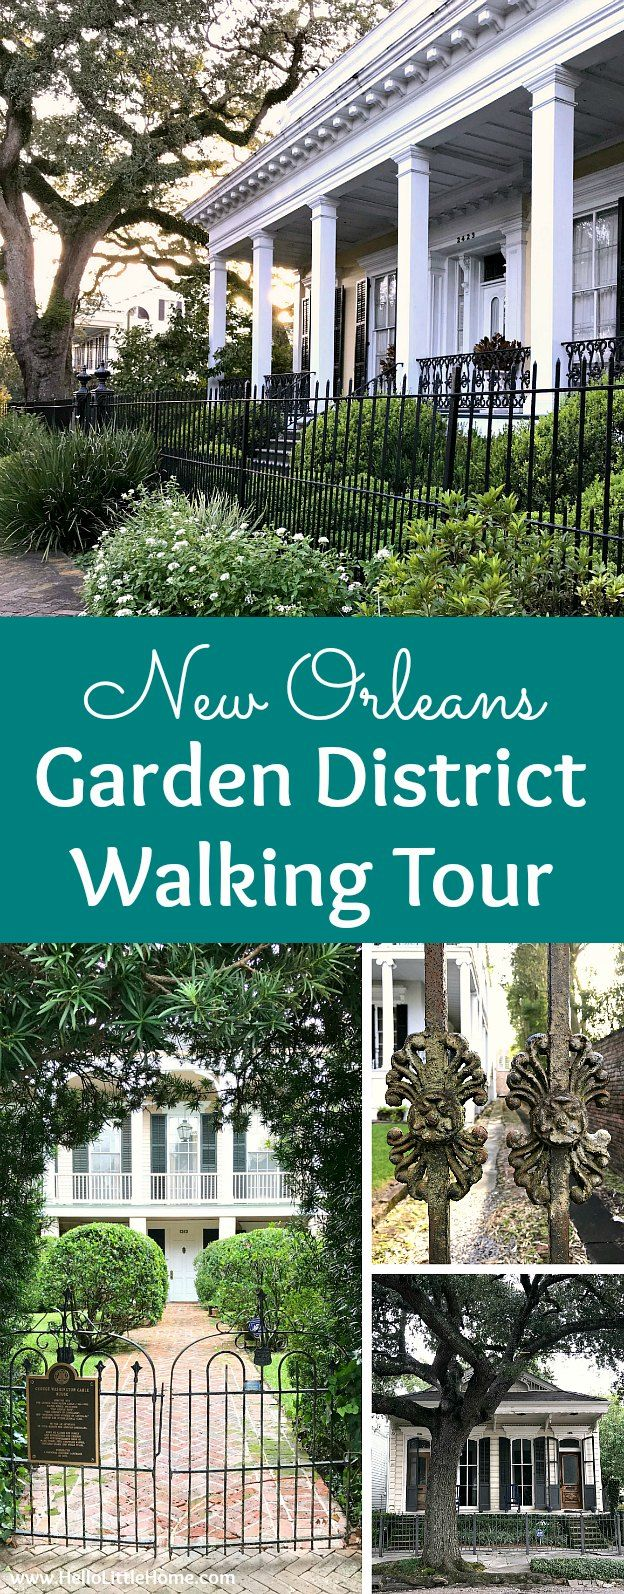 Take this free self-guided Garden District Walking Tour to see the prettiest New Orleans neighborhood with beautiful mansions, a historic cemetery and more!